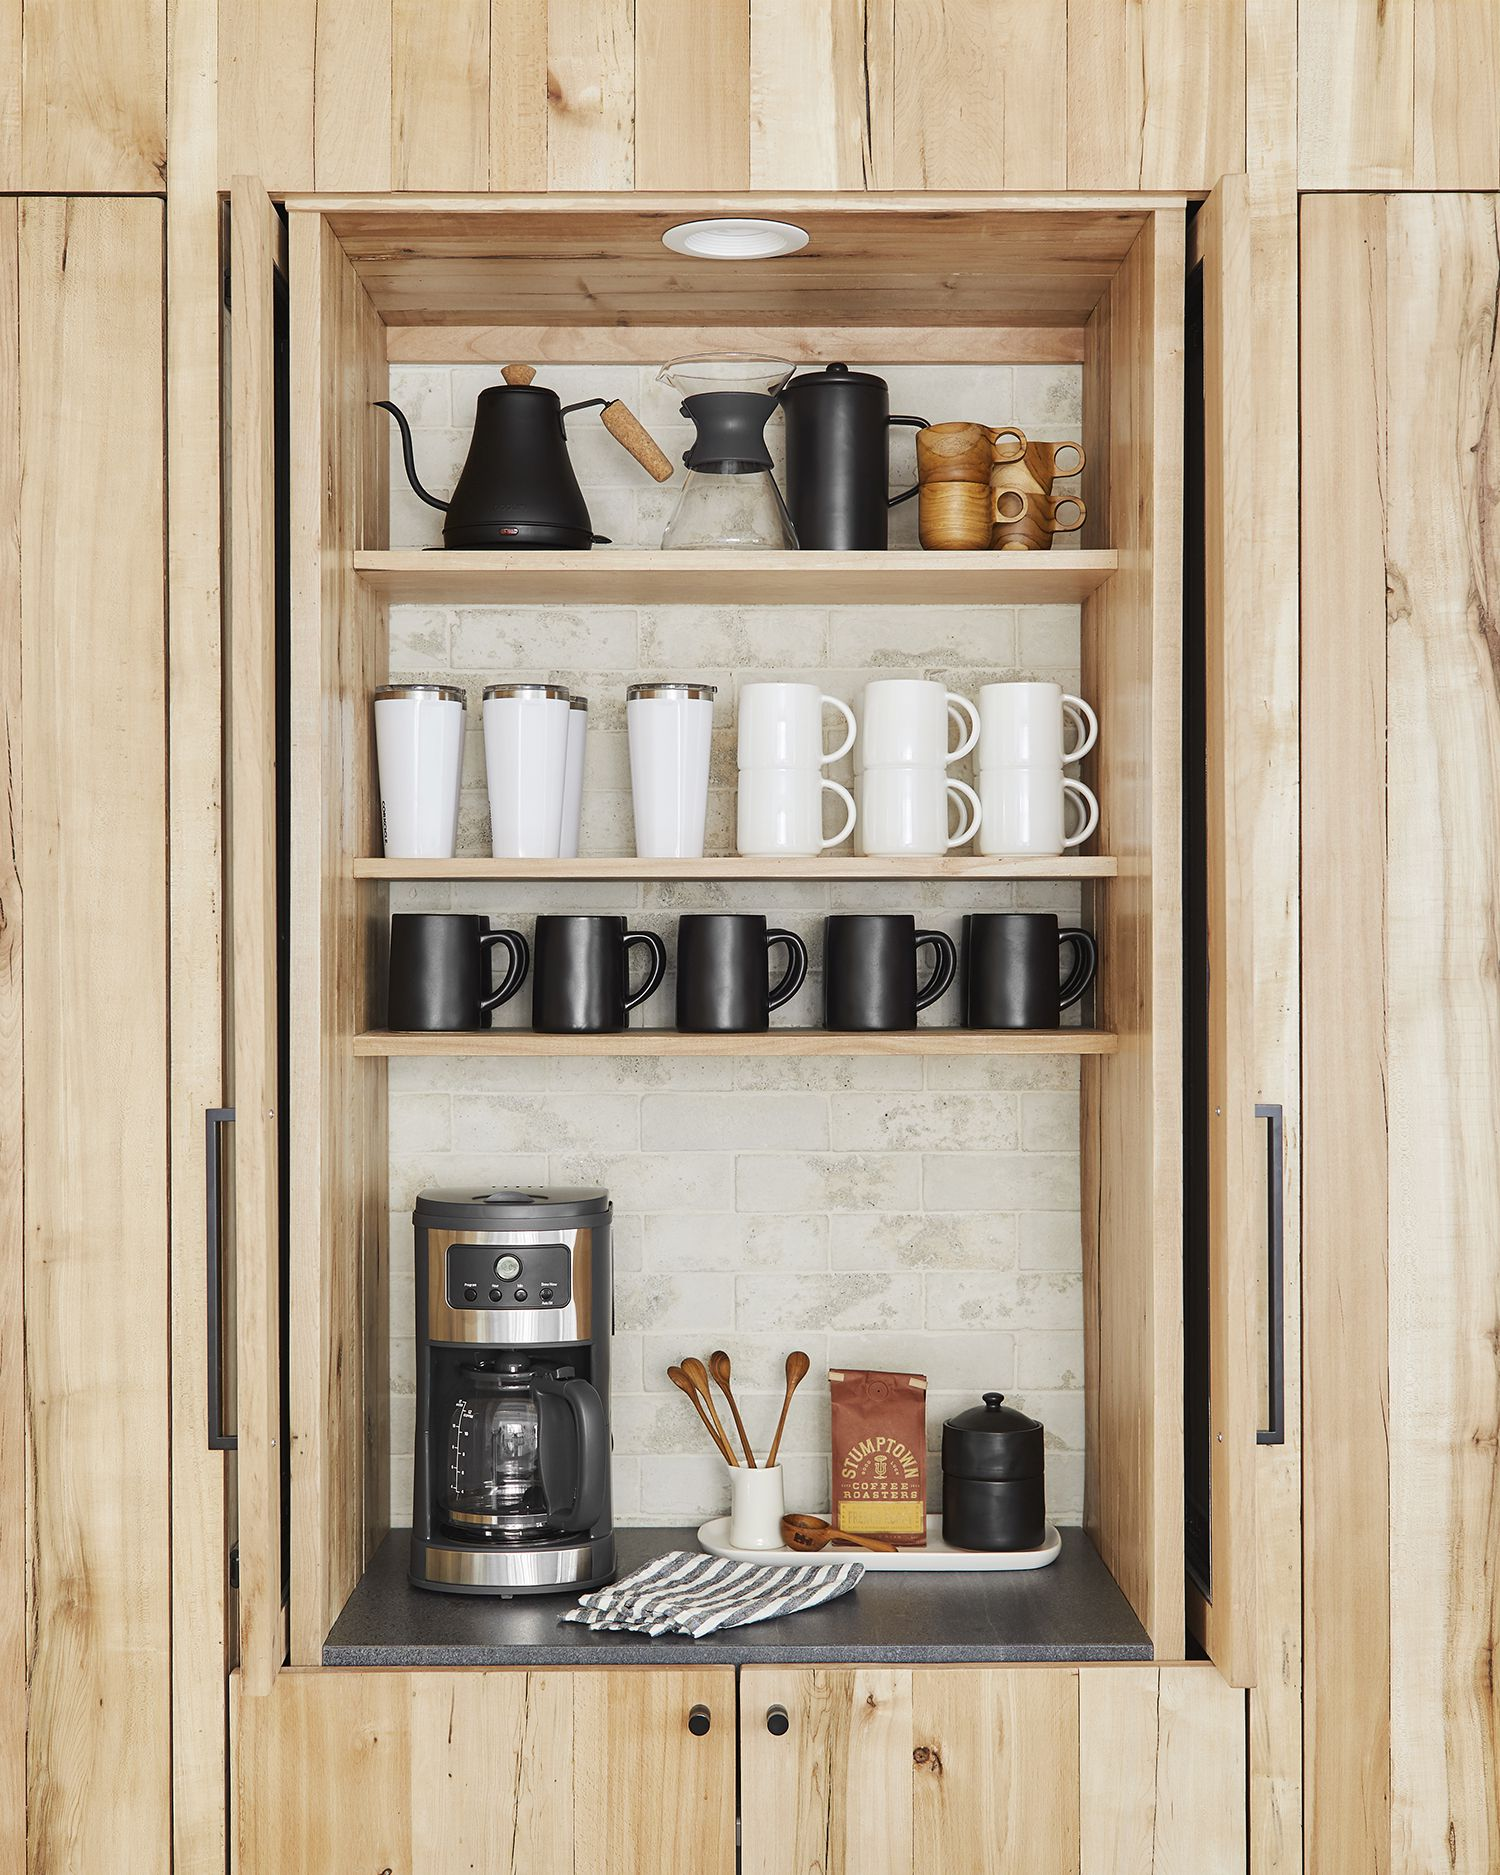 Home Coffee Bar Design Ideas: How To Set Up A Stylish Coffee Bar In Your Own Home